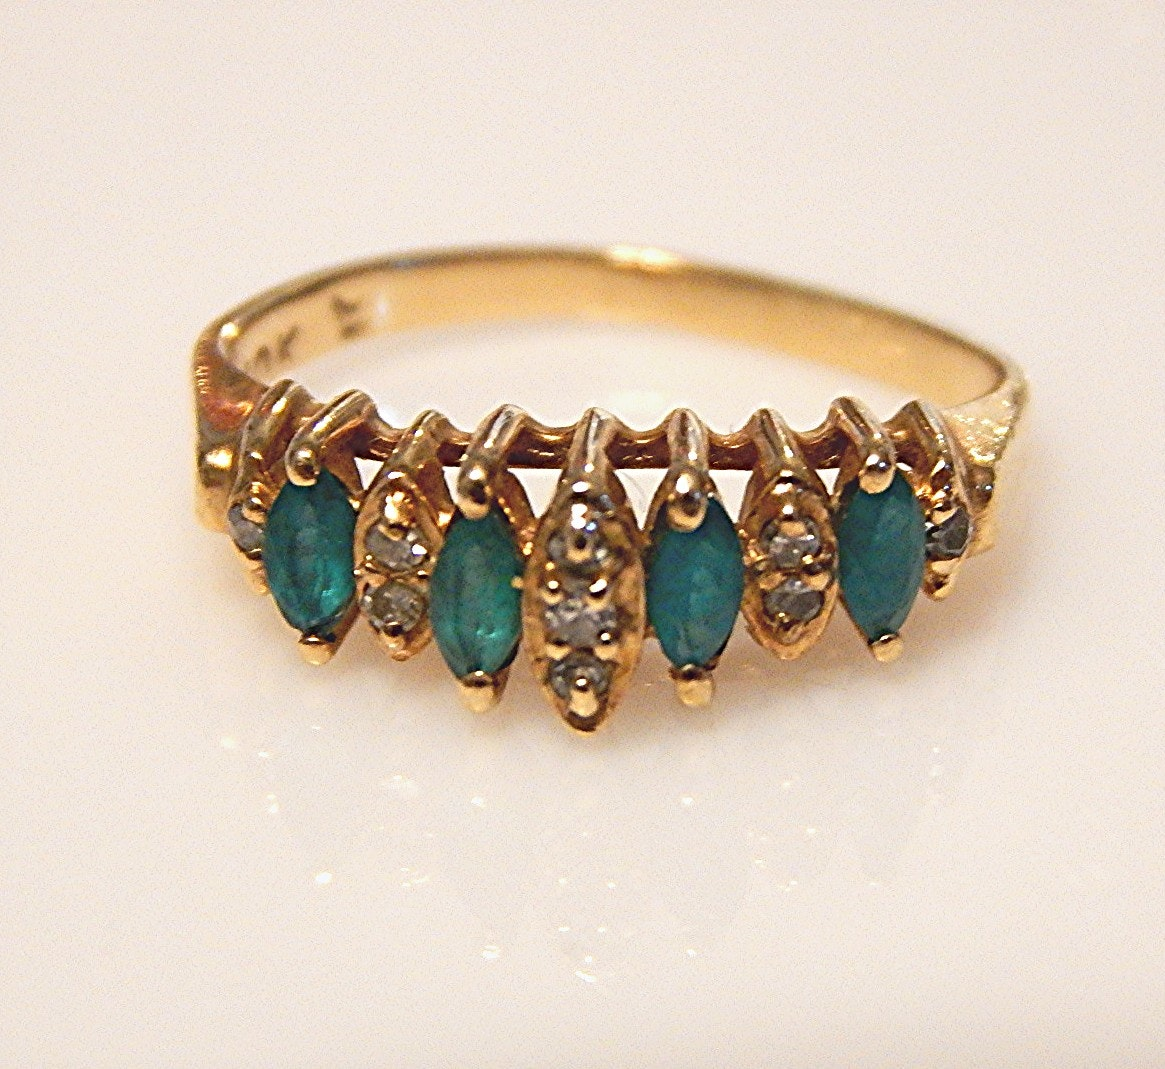 10K Yellow Gold Emerald and Diamond Ring